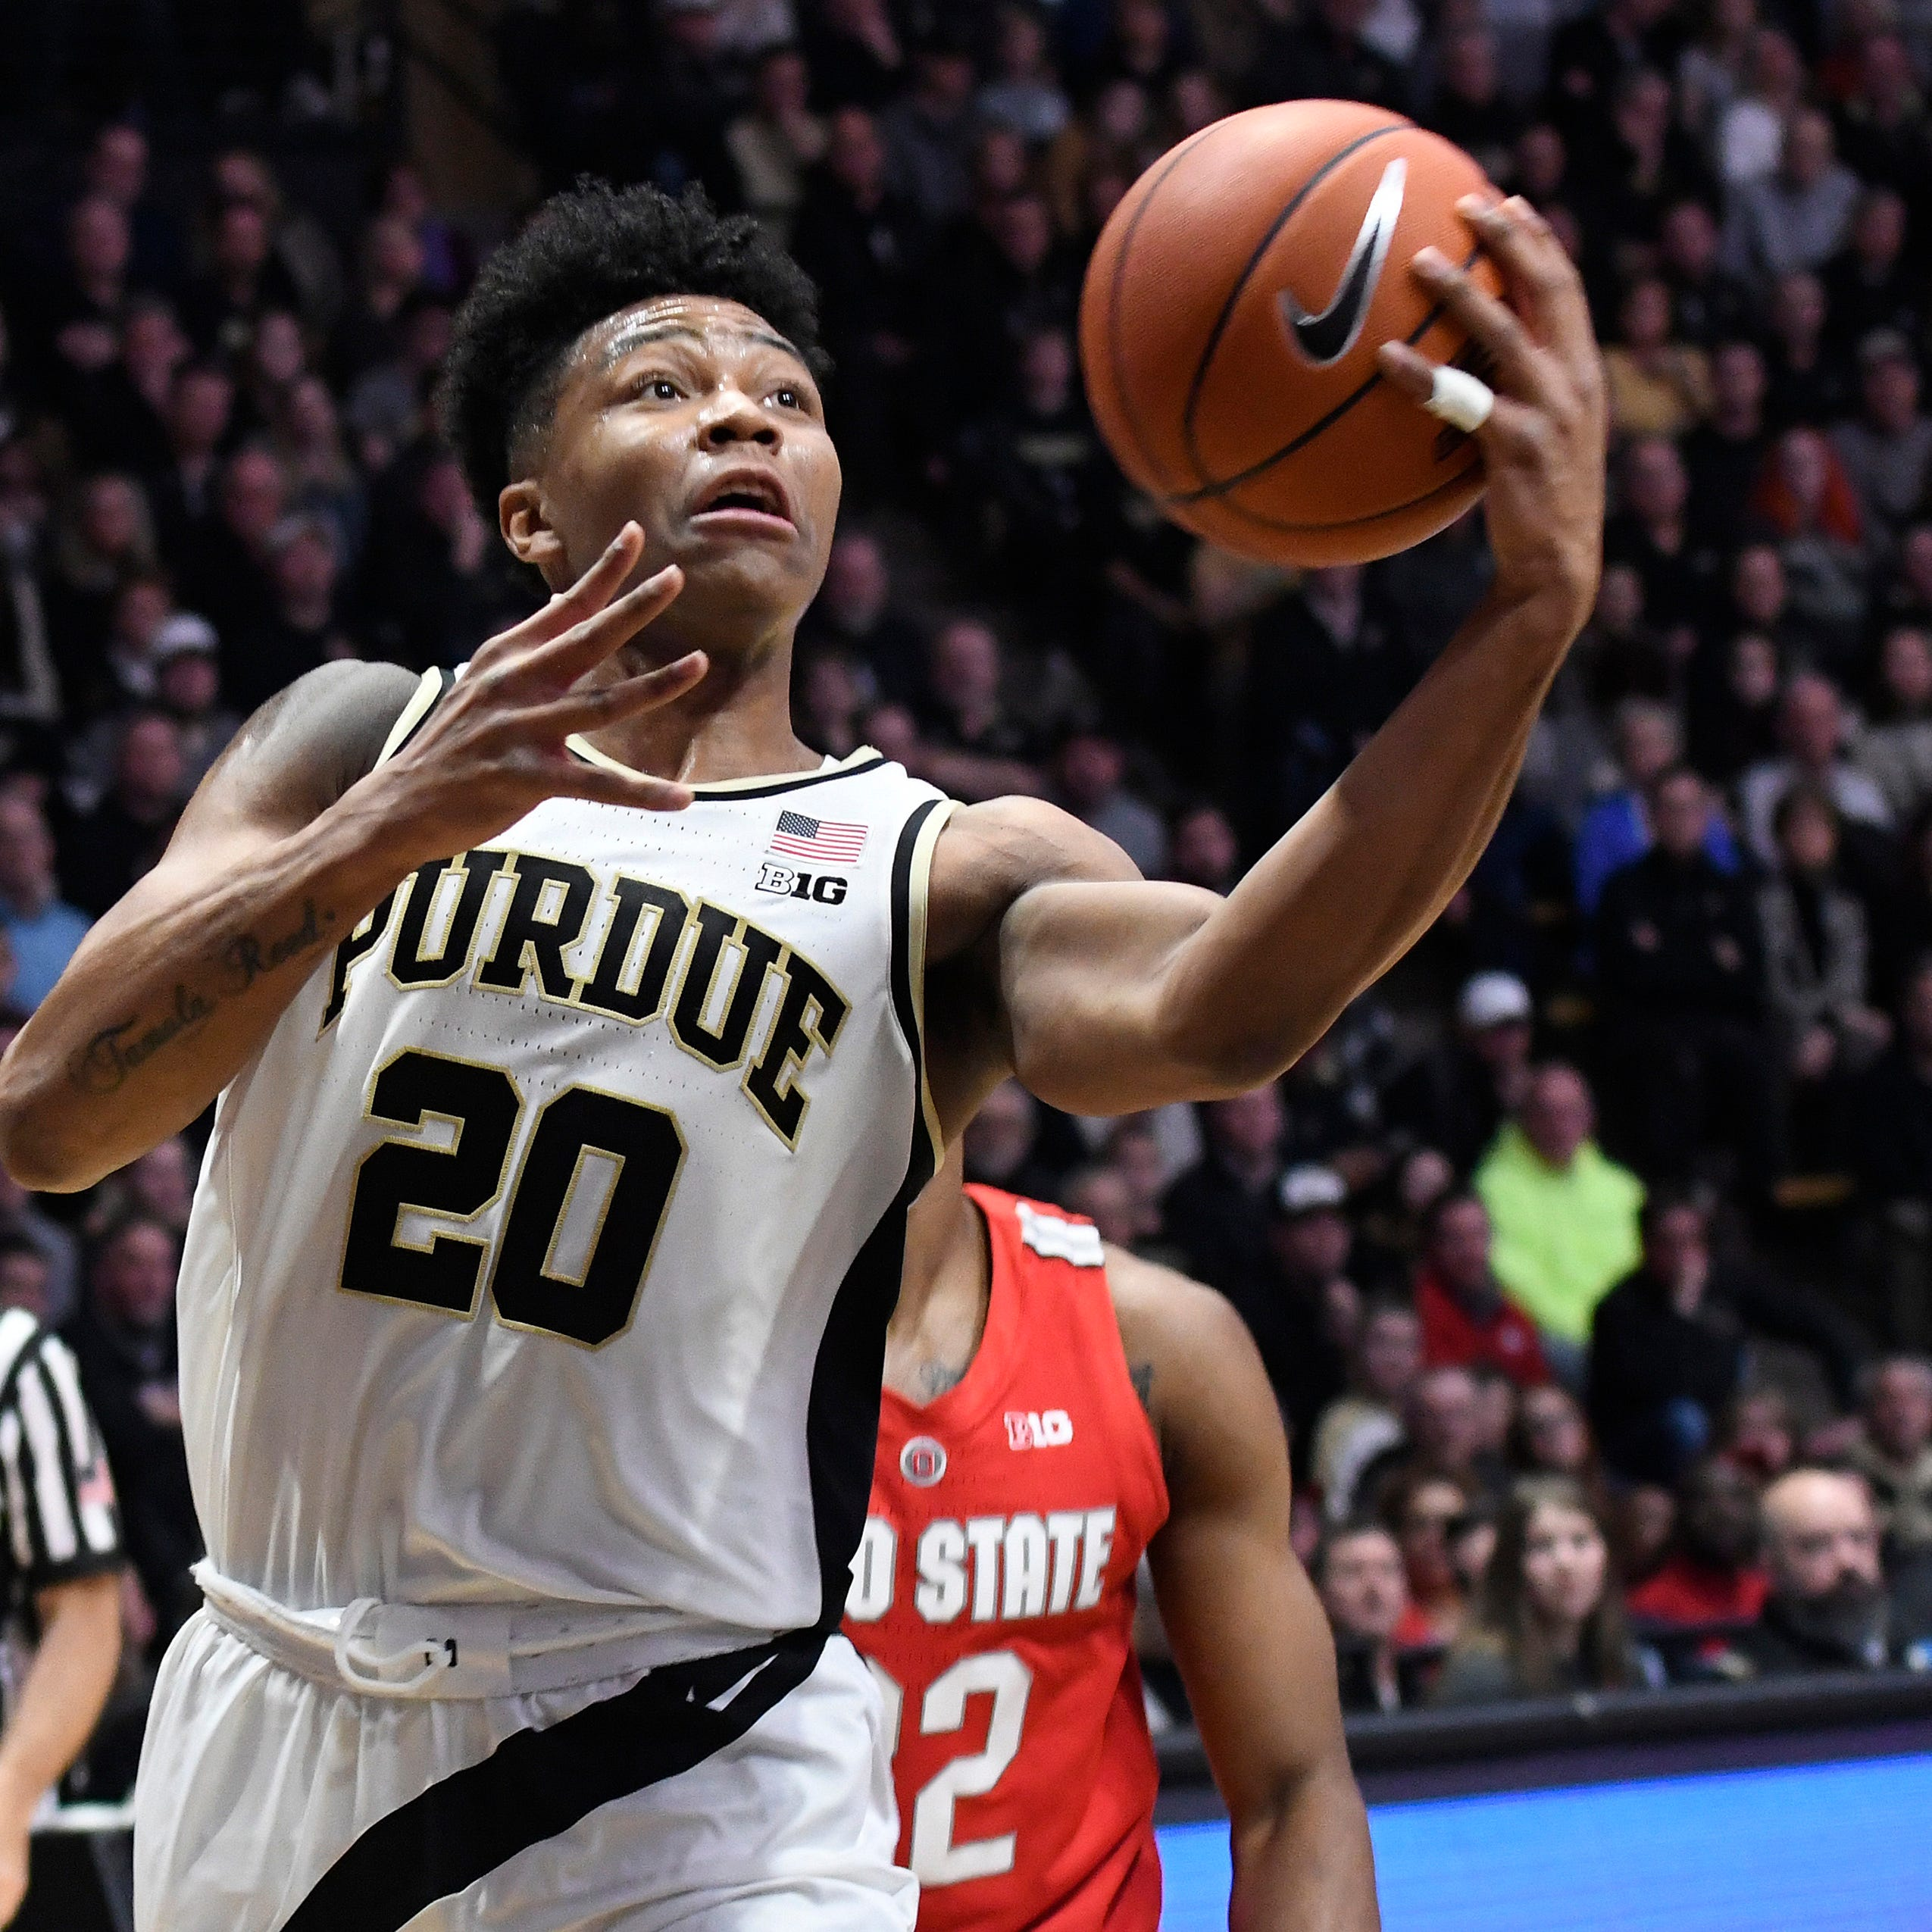 March Madness 2019: Purdue basketball's Nojel Eastern does not start after injury